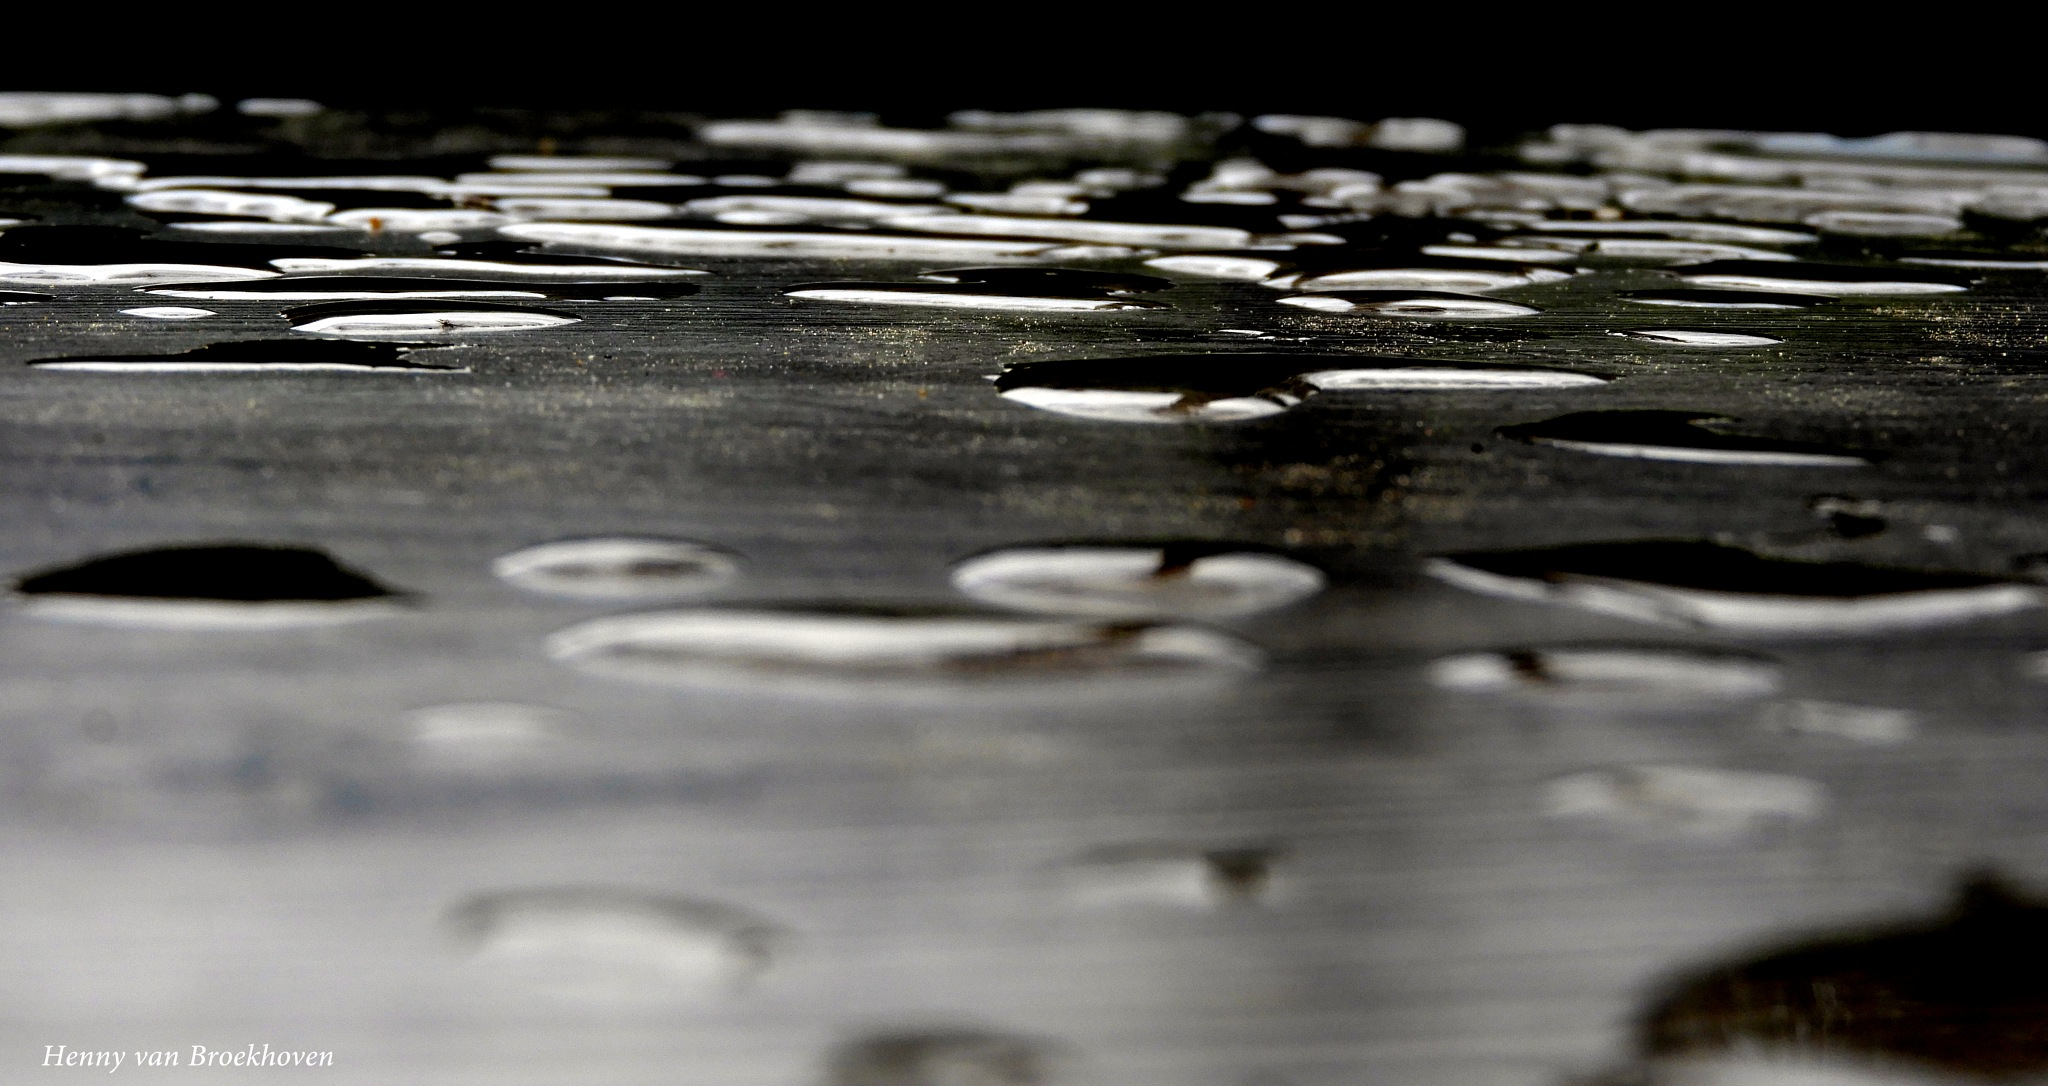 raindrops on the table by Henny van Broekhoven